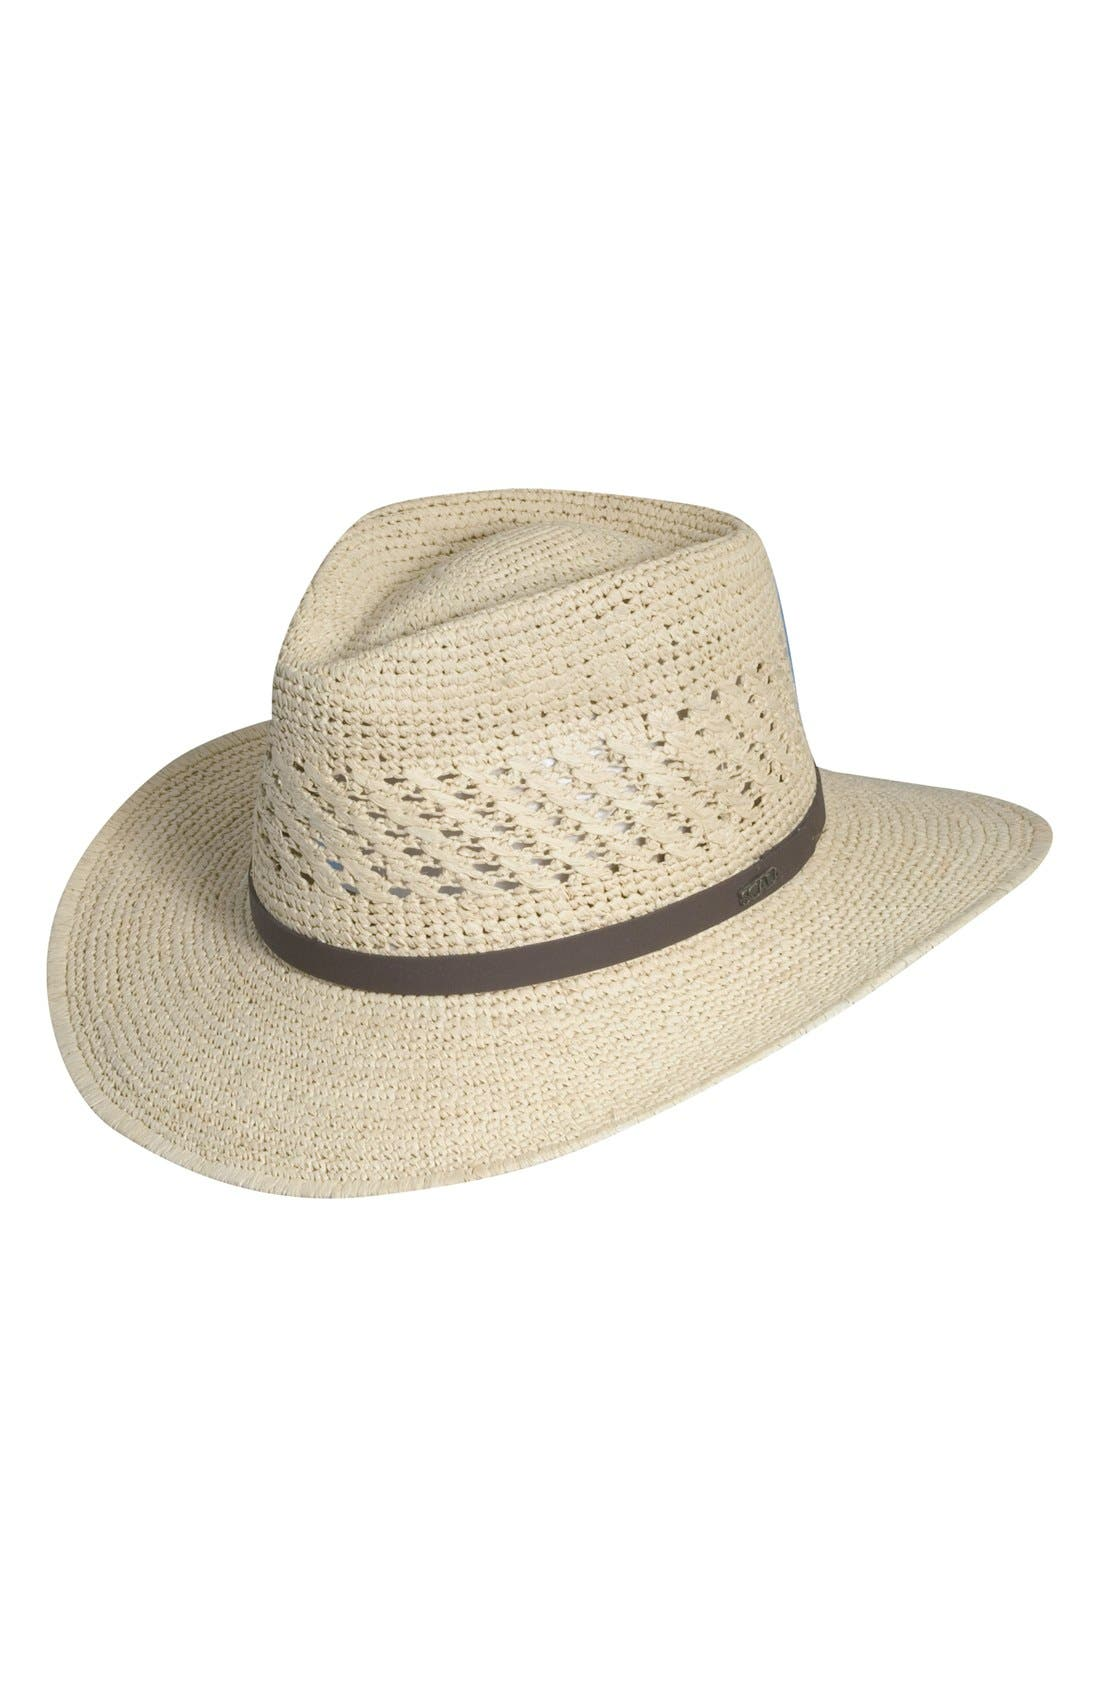 Alternate Image 1 Selected - Scala Straw Outback Hat